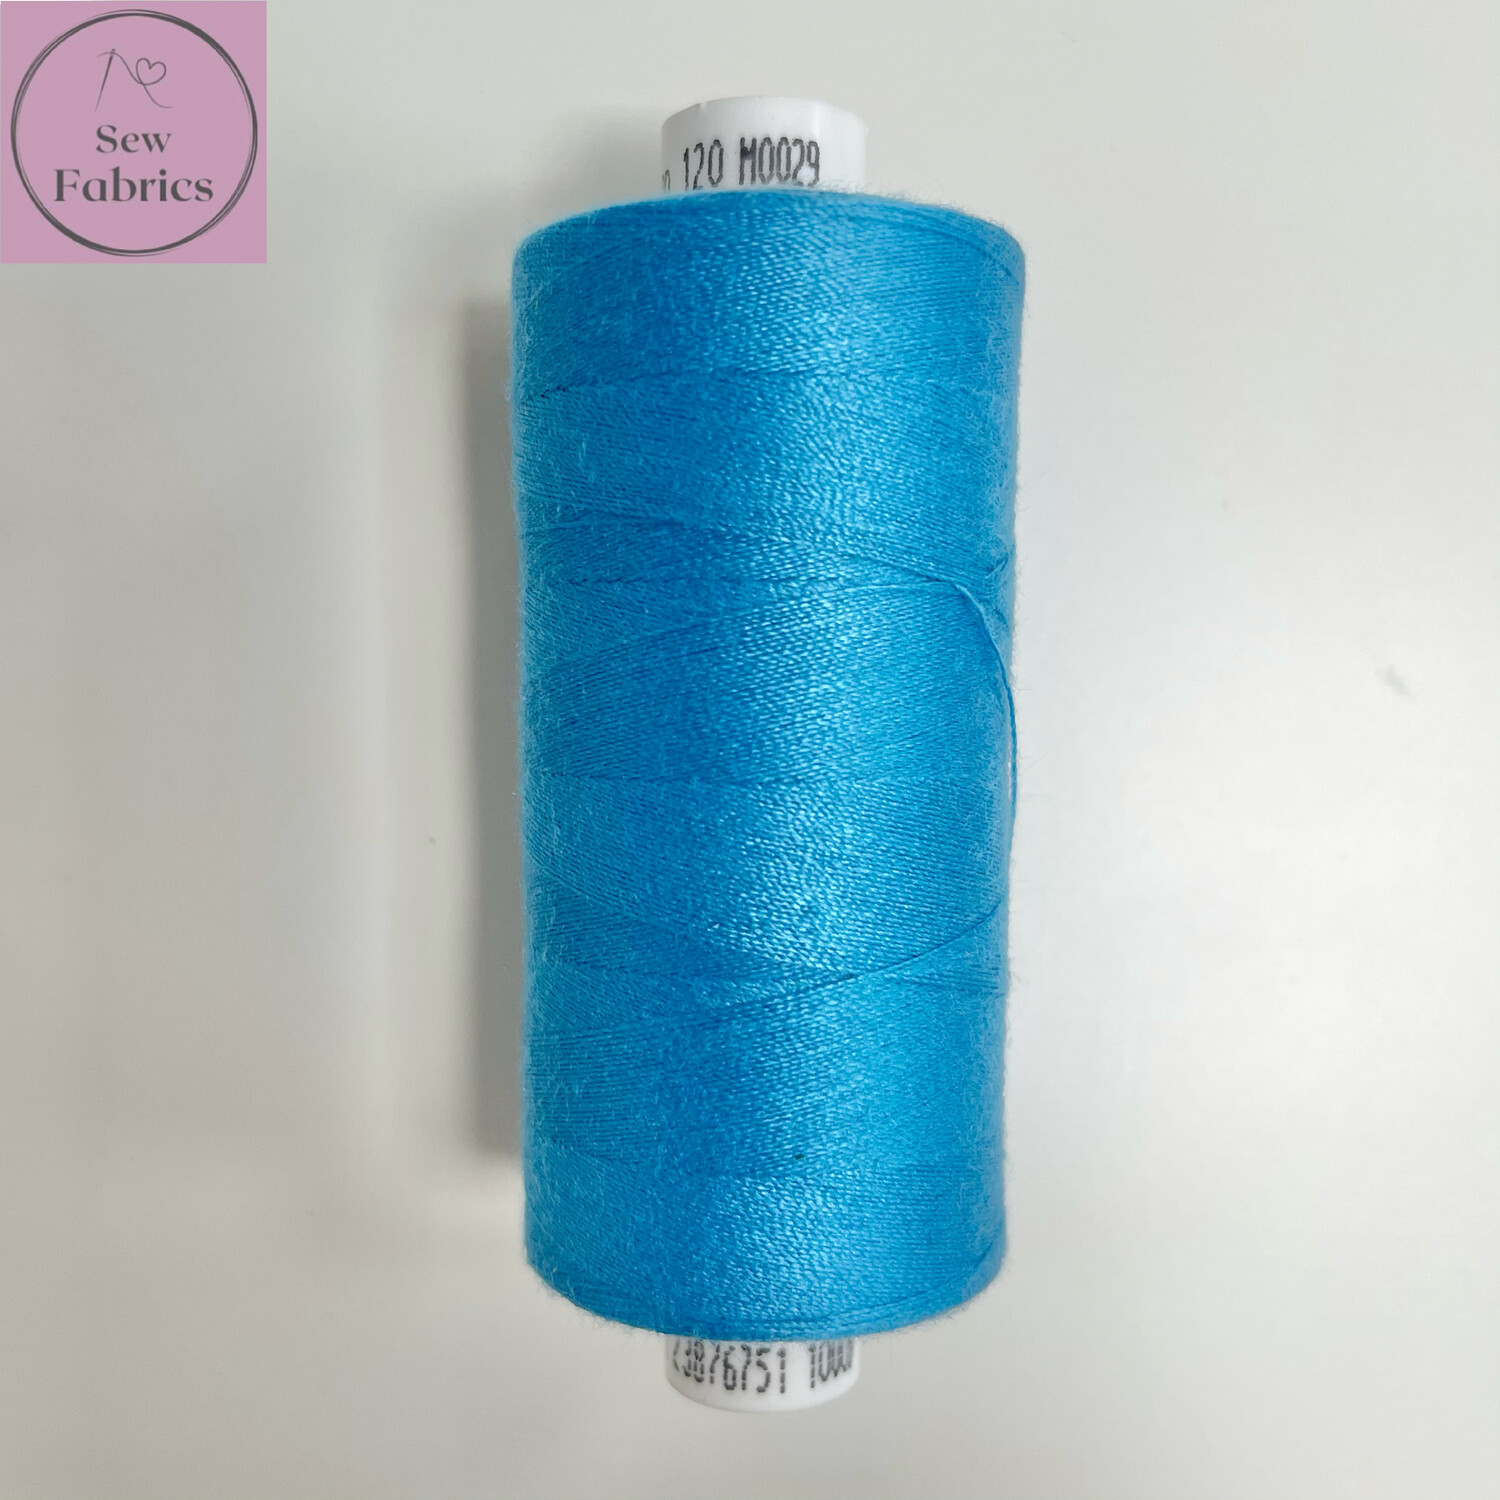 1 x 1000y Coats Moon Thread - Turquoise Blue M029